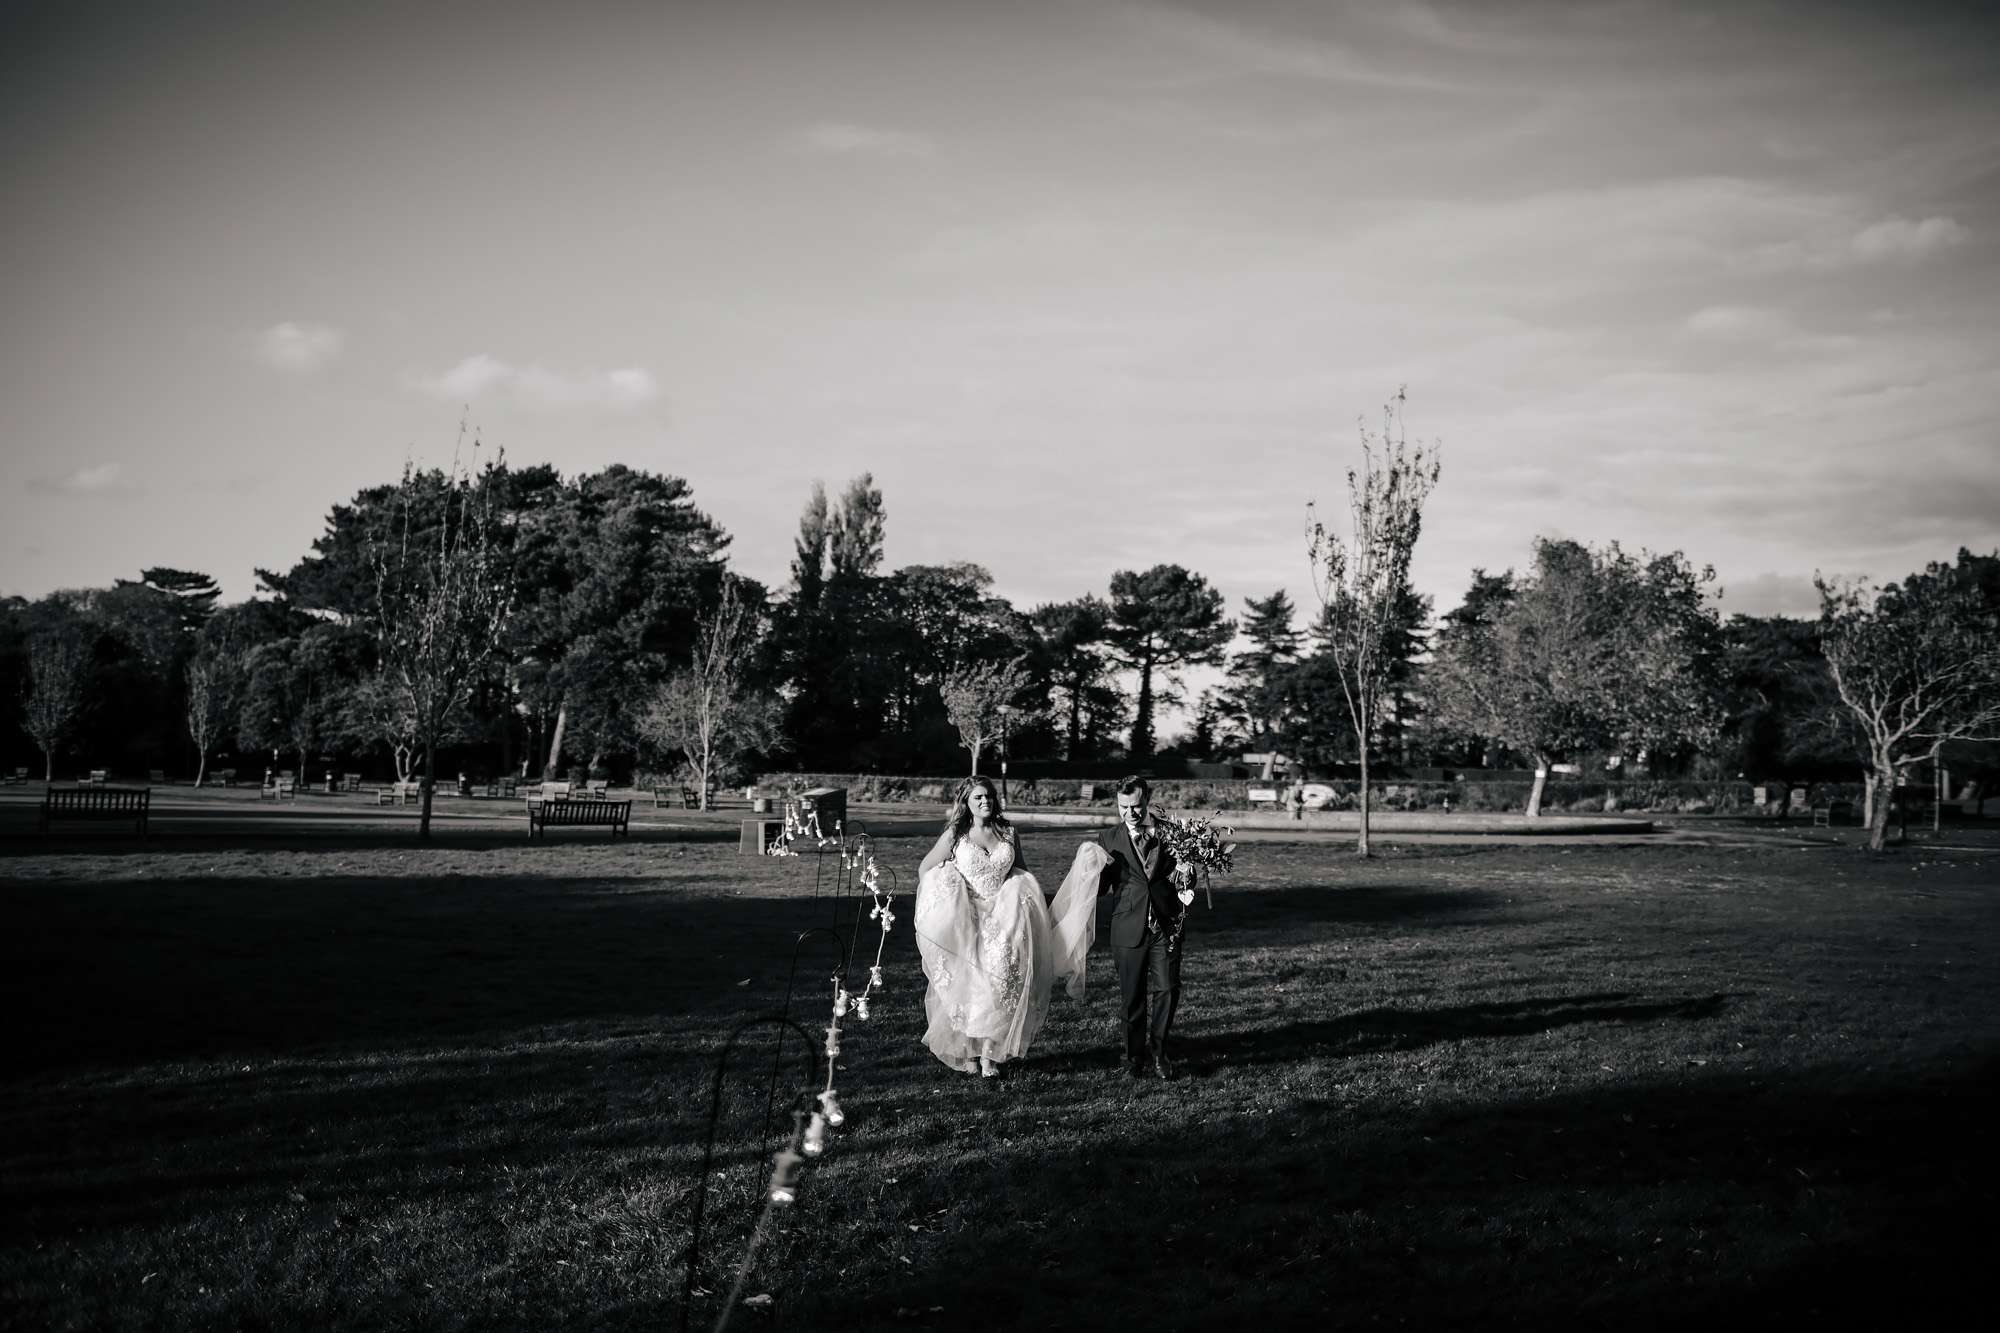 Bride and groom walking through the park at their wedding